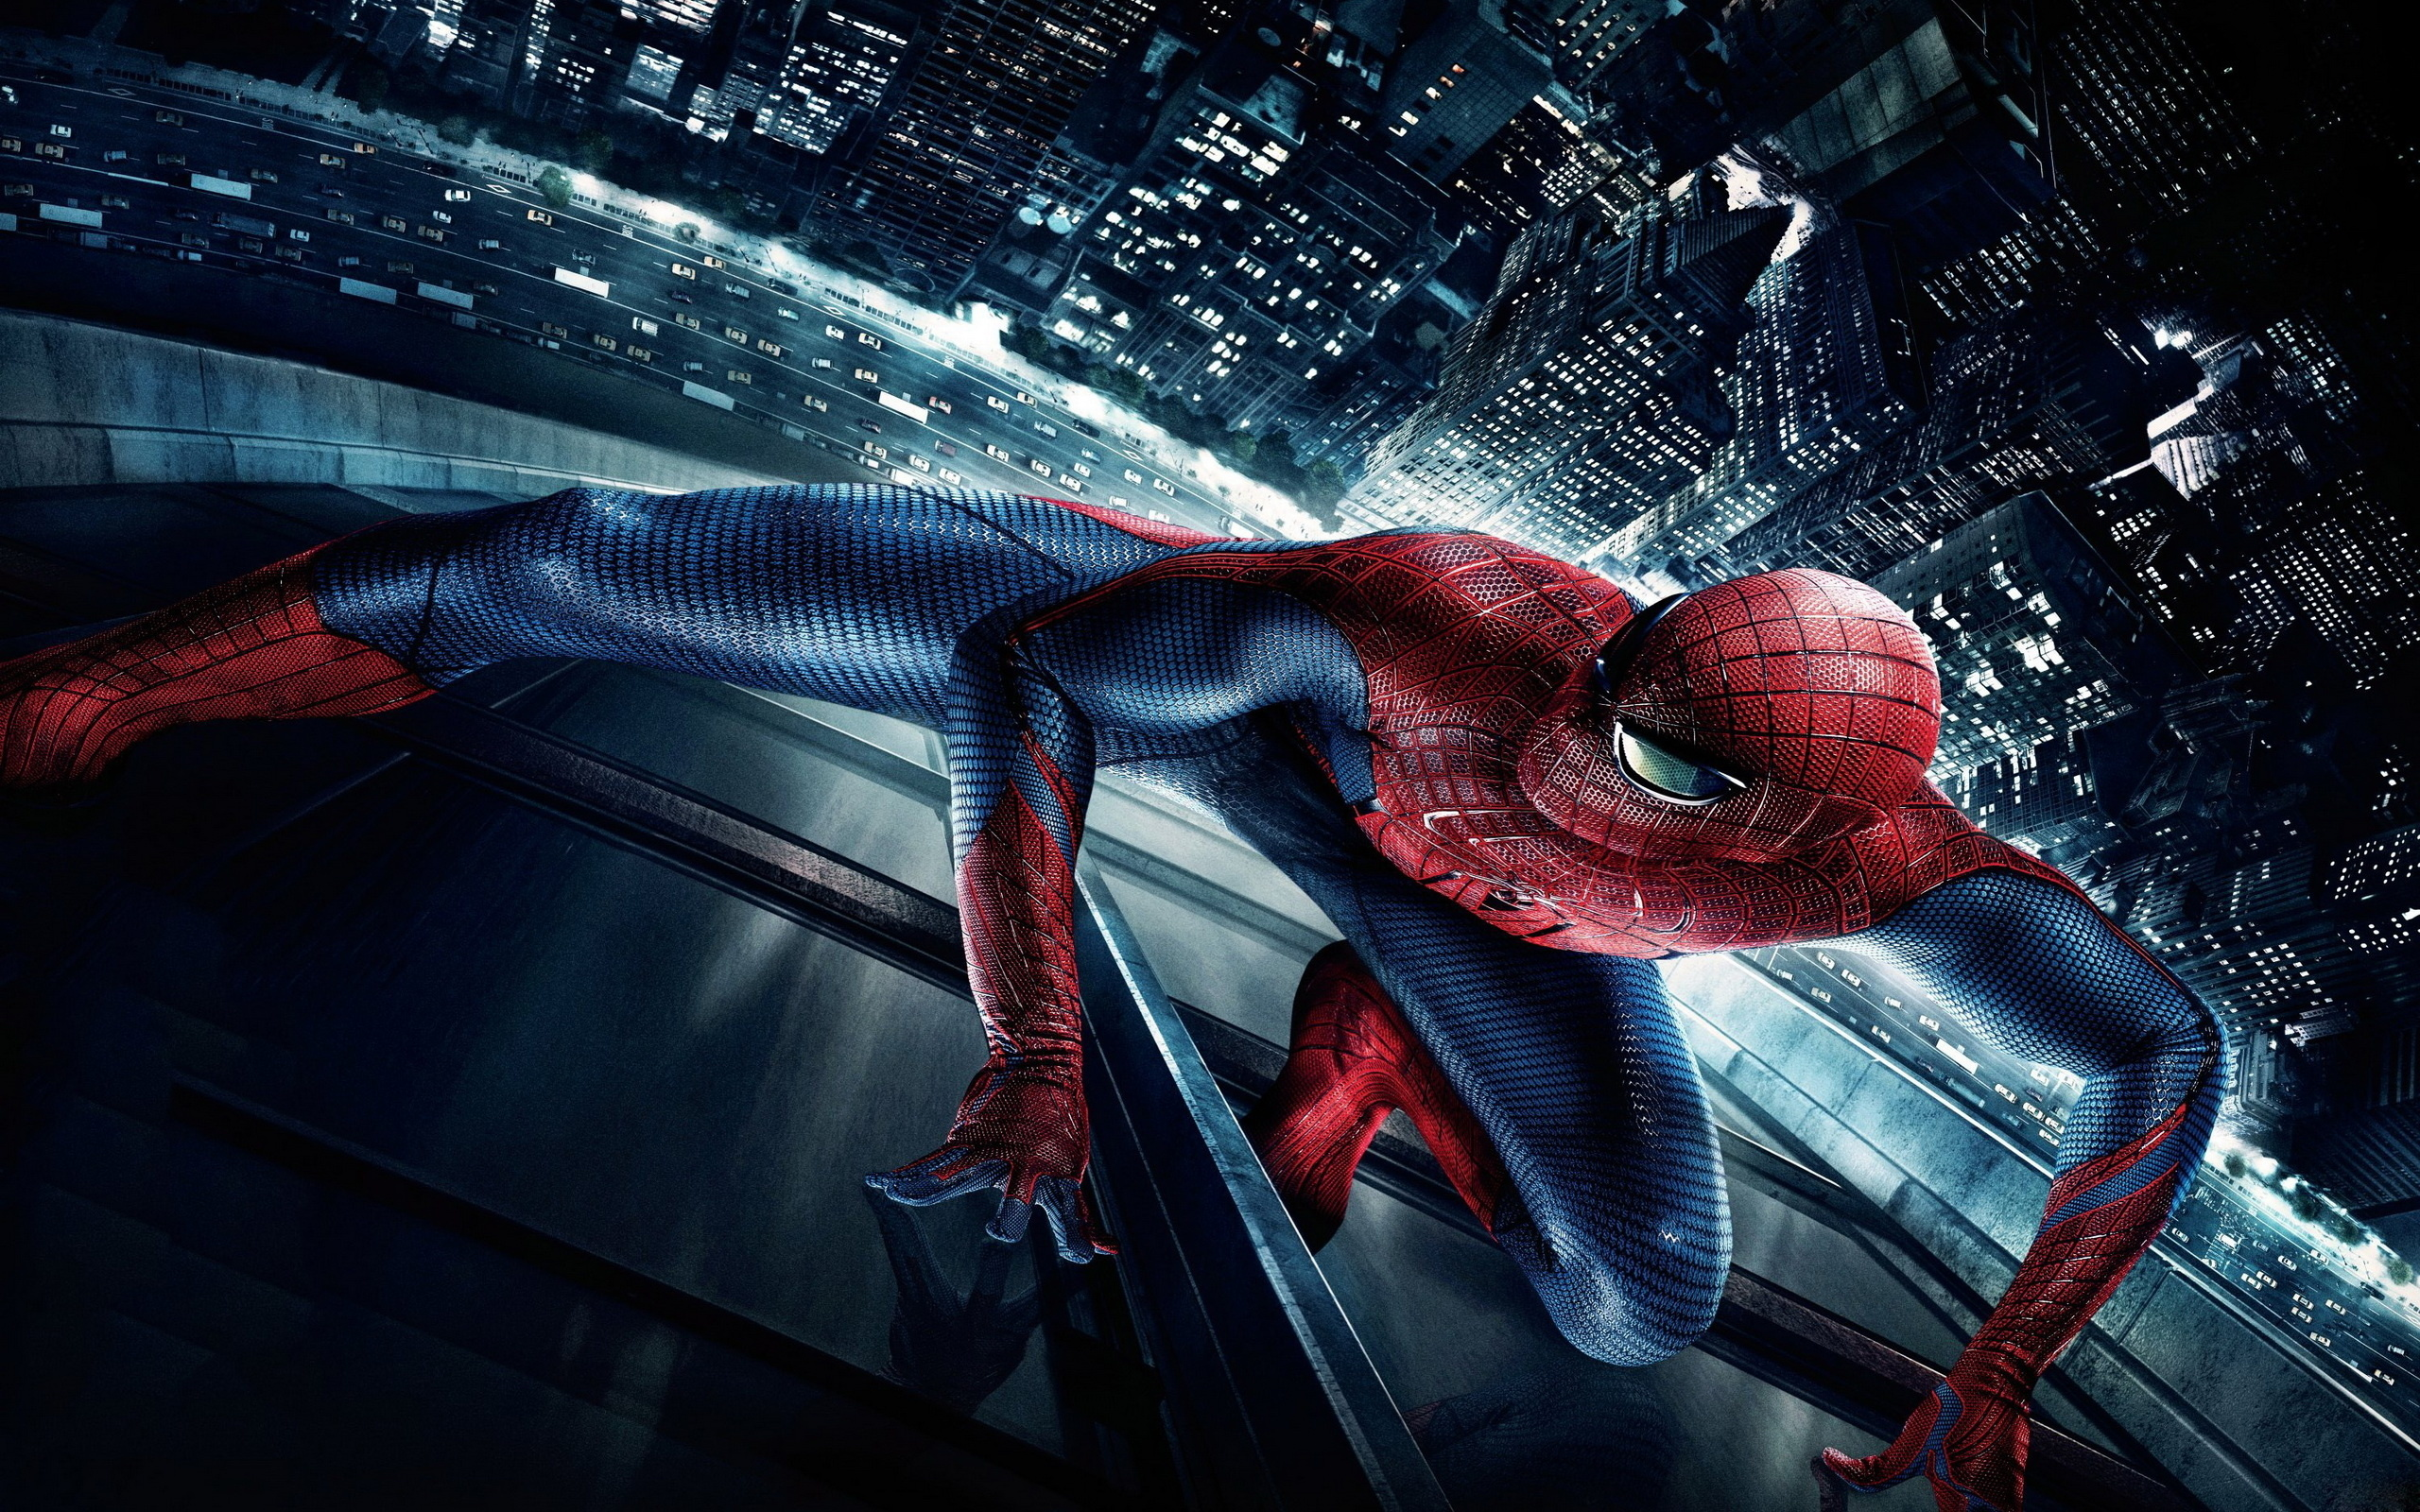 spider-man wallpapers, pictures, images